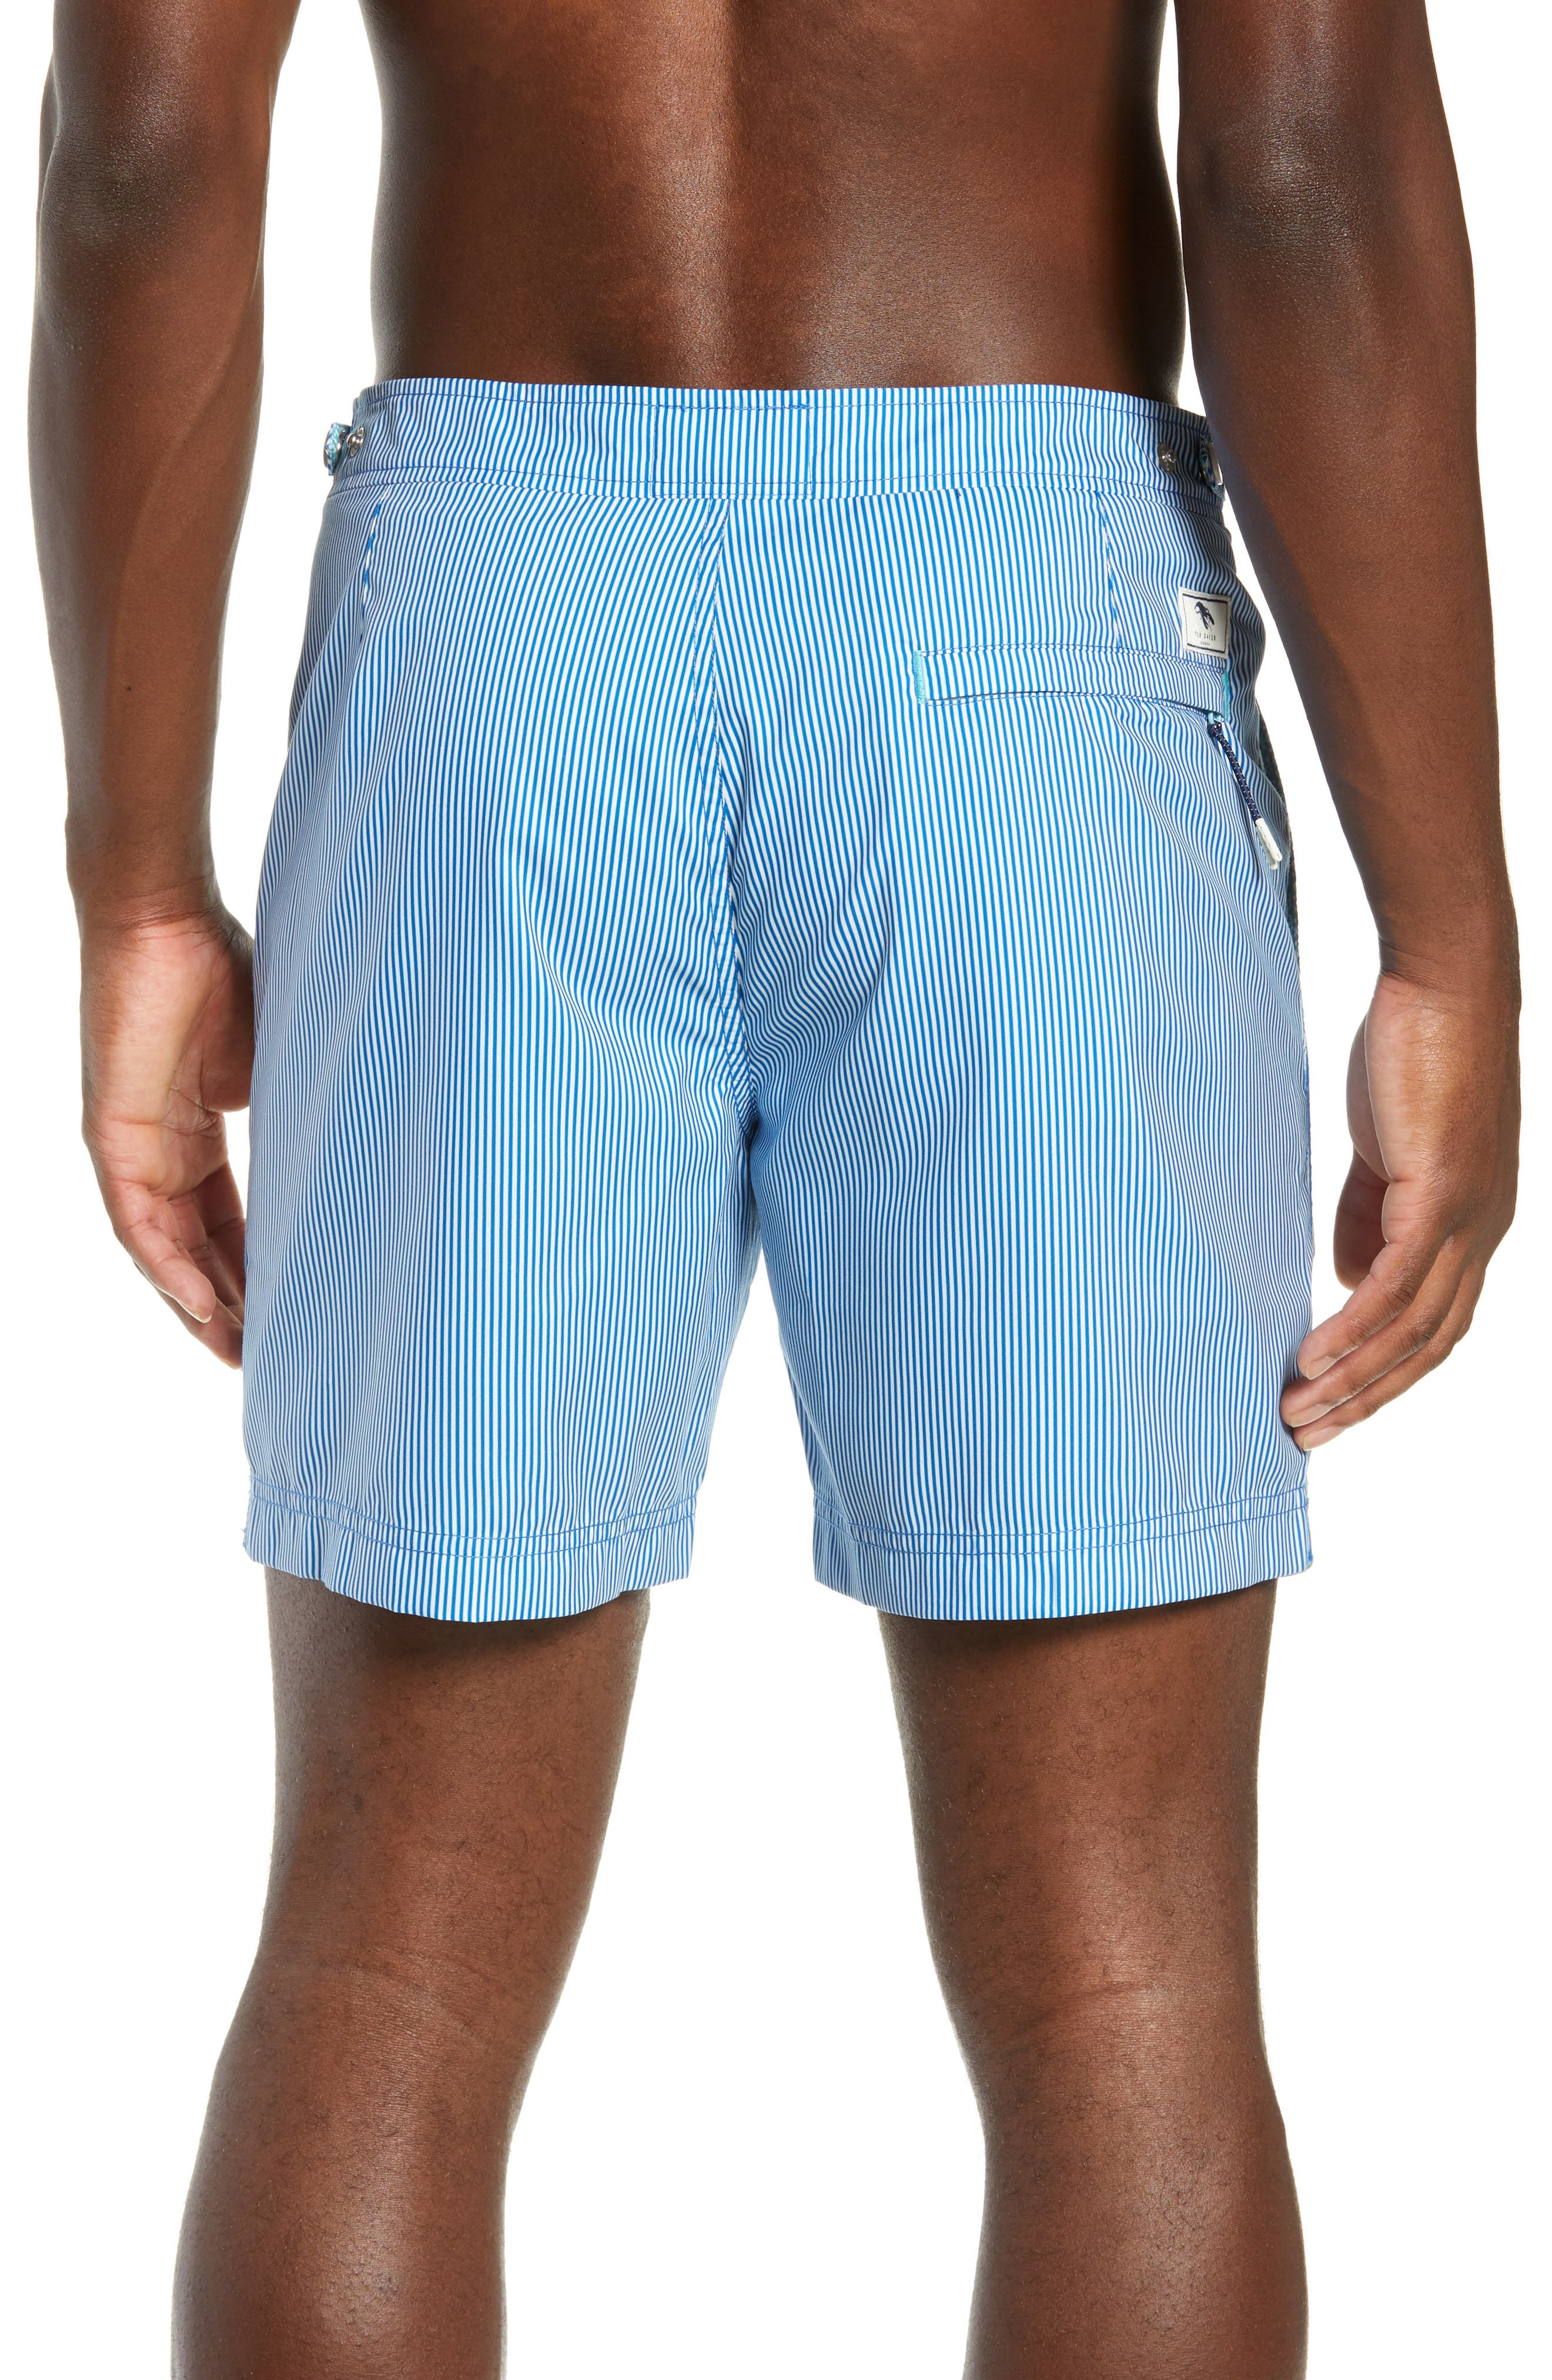 TED BAKER LONDON, Seel Stripe Swim Trunks, Alternate thumbnail 2, color, BLUE